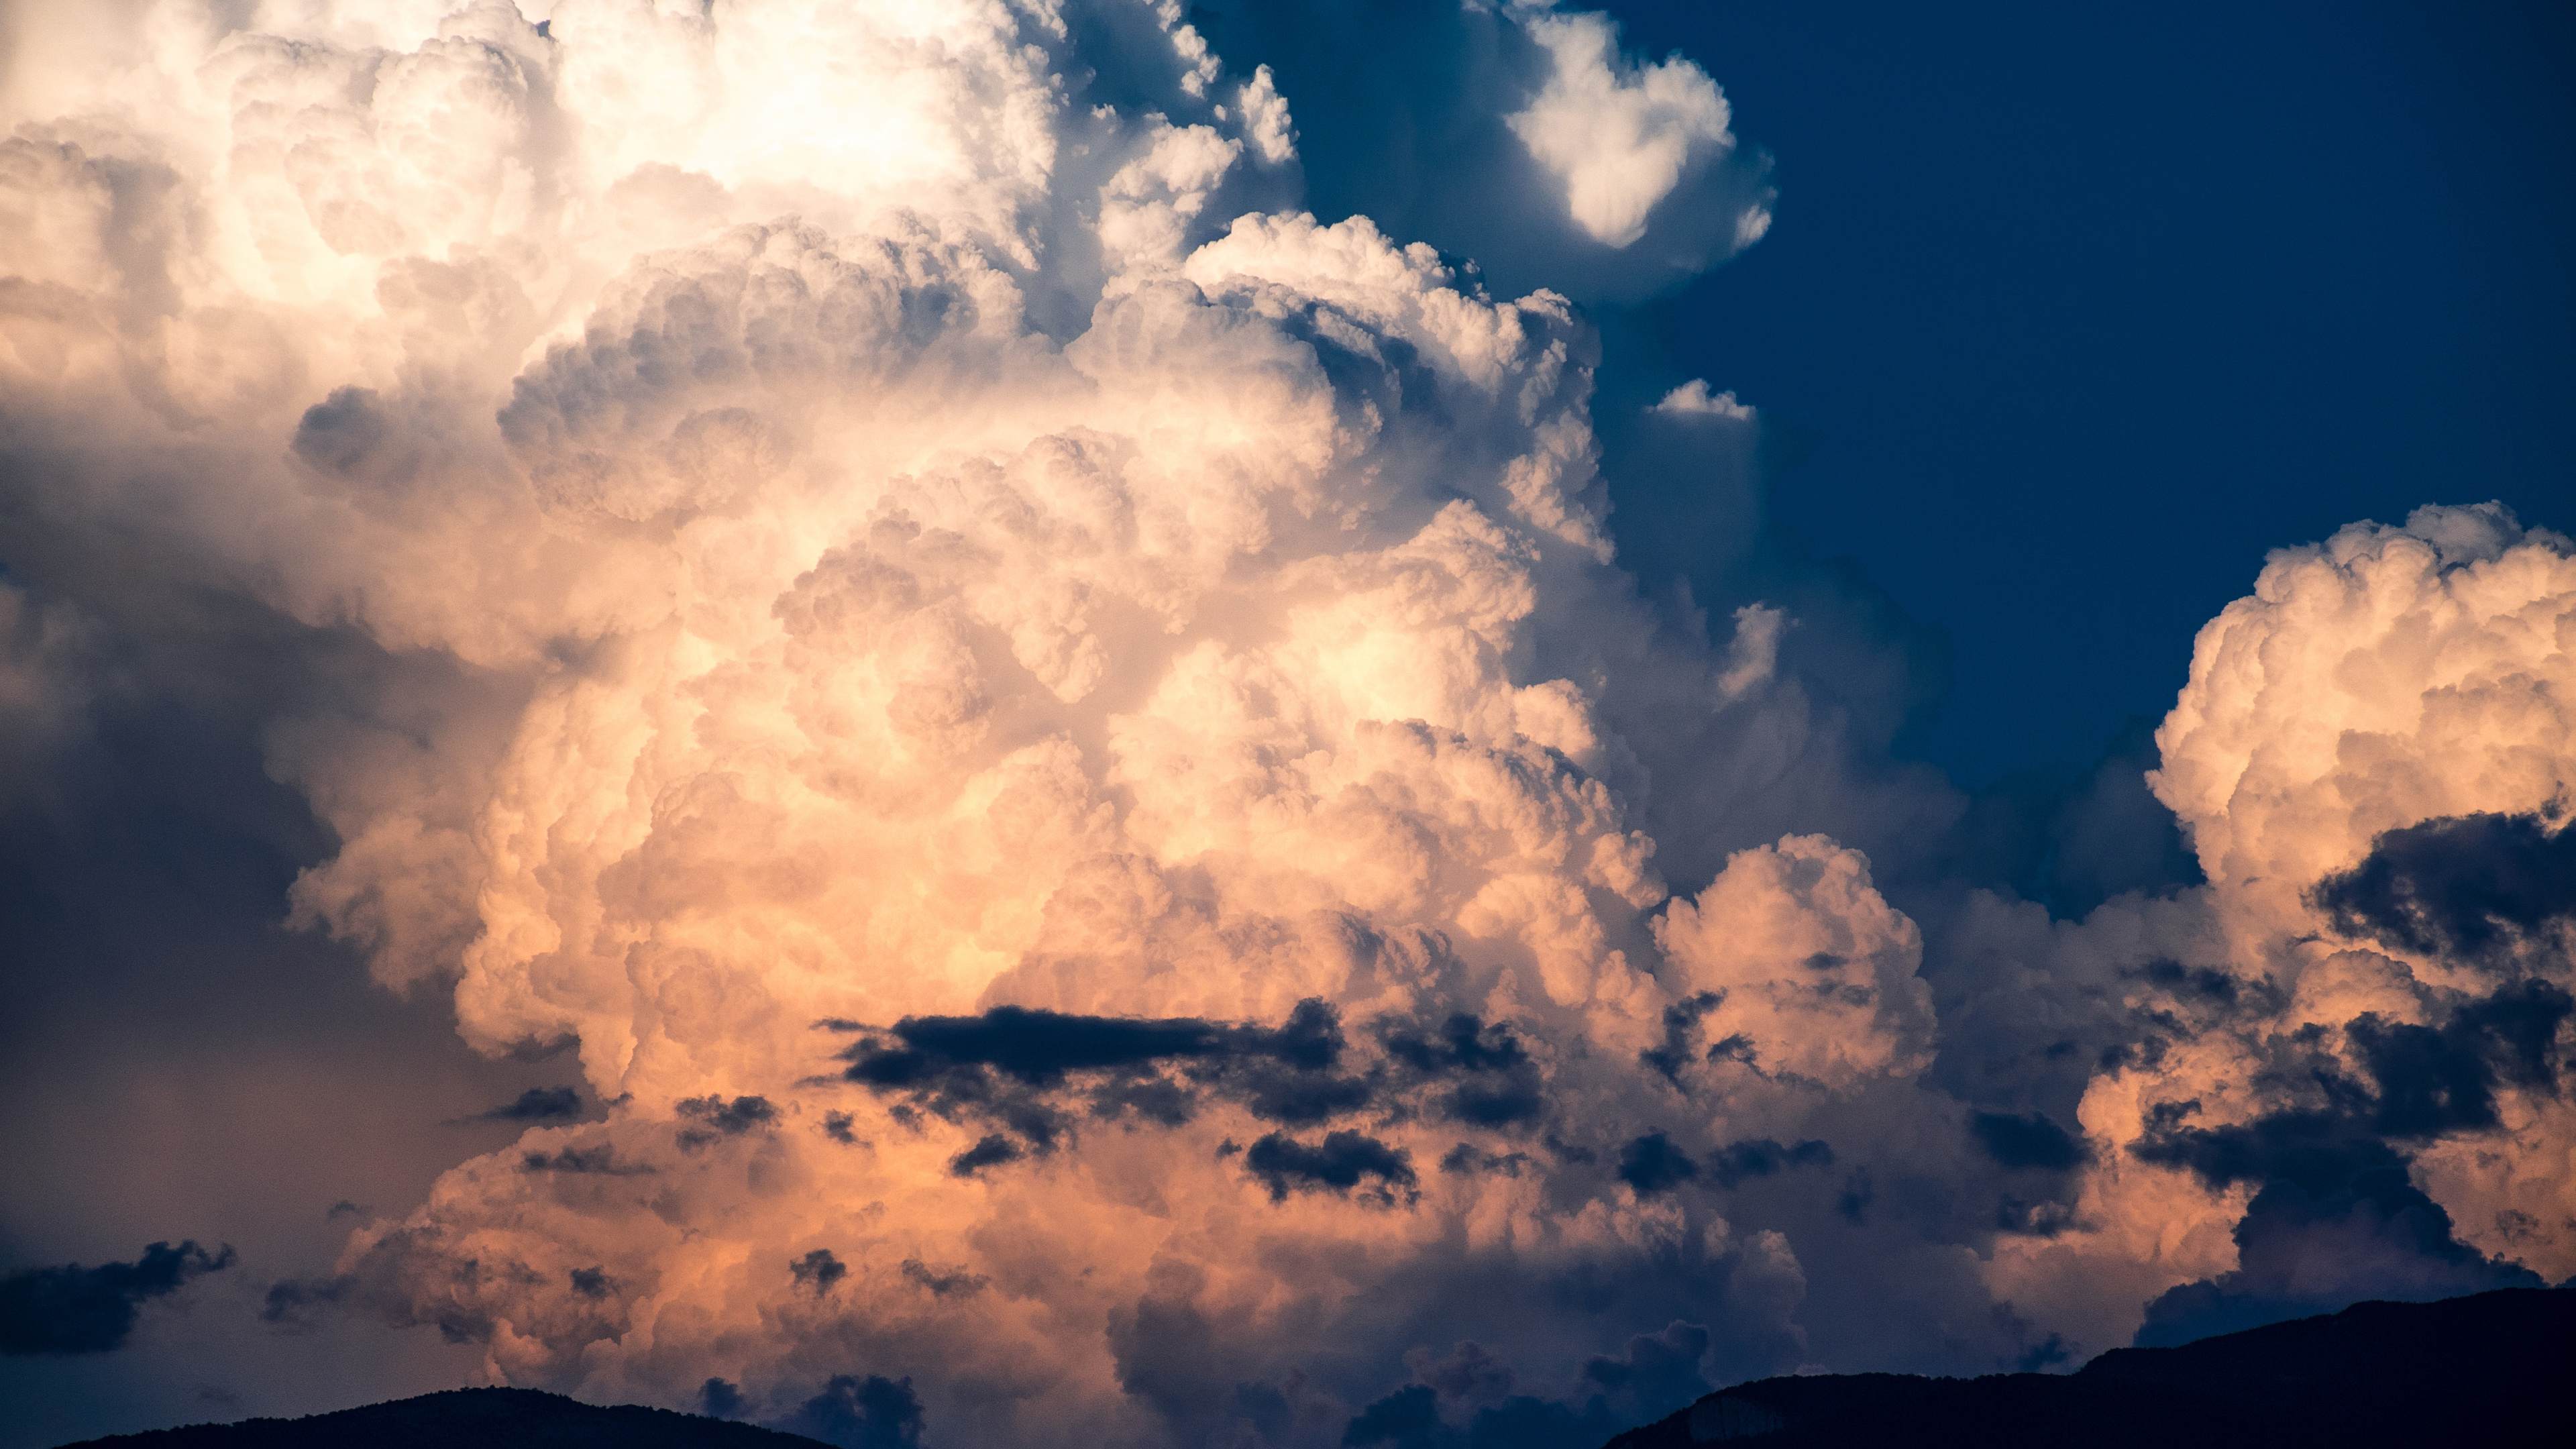 clouds photography 4k 1540136438 - Clouds Photography 4k - photography wallpapers, nature wallpapers, mountains wallpapers, hd-wallpapers, clouds wallpapers, 5k wallpapers, 4k-wallpapers